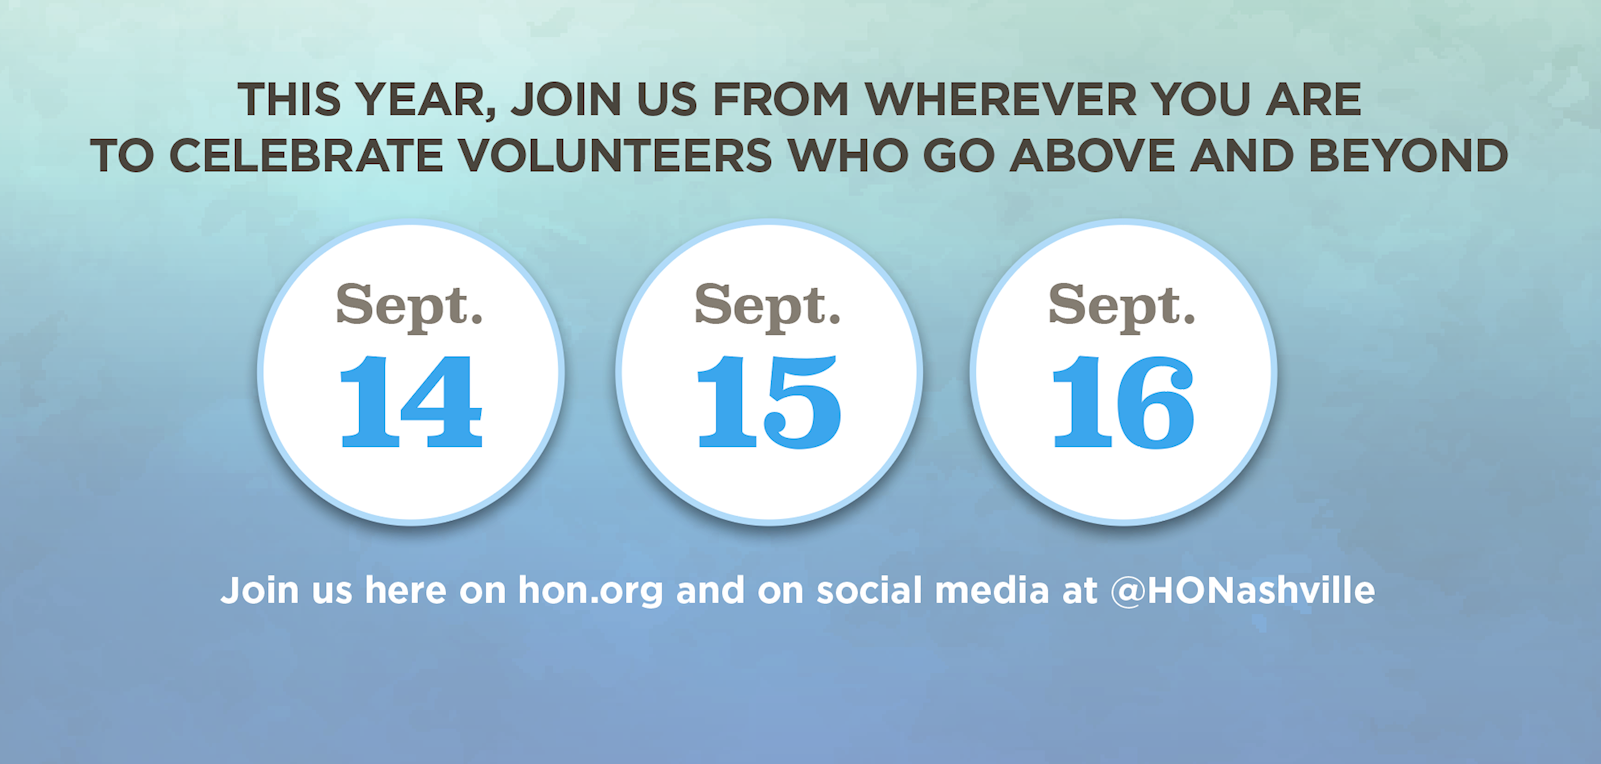 Join us at hon.org on Sept. 14, 15, and 16!